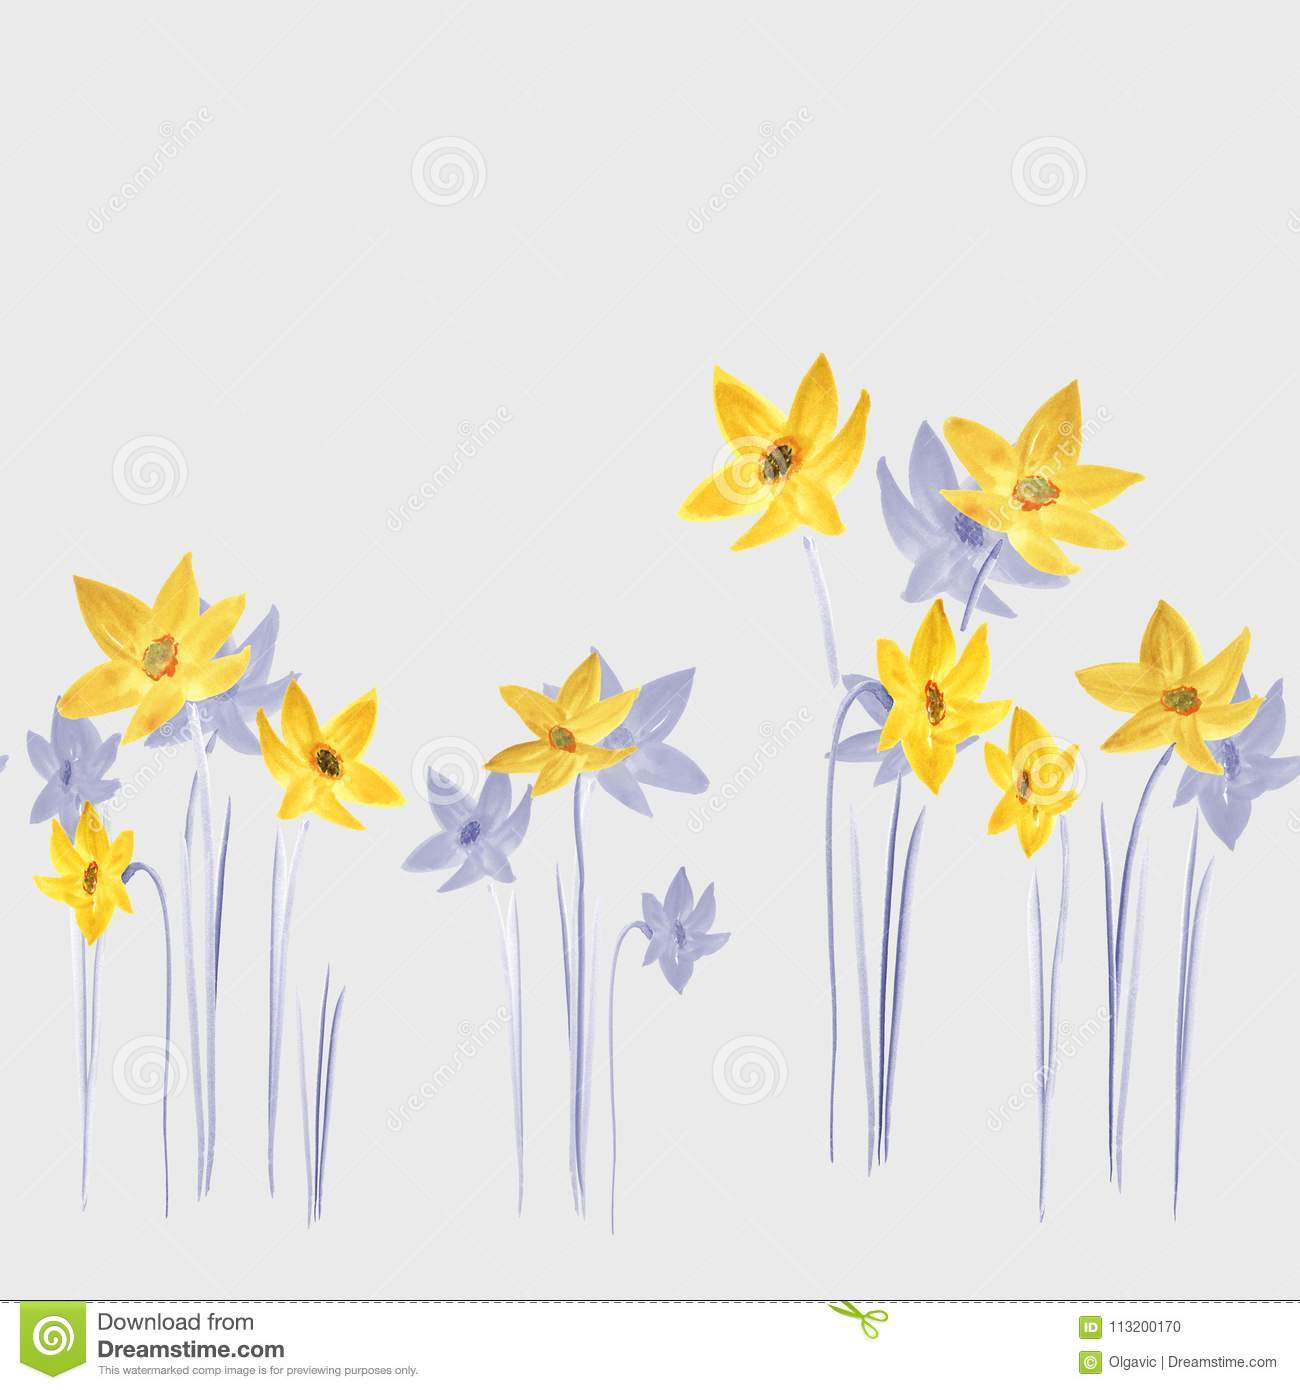 Seamless Pattern Of Spring Yellow And Violet Flowers On A Light Gray